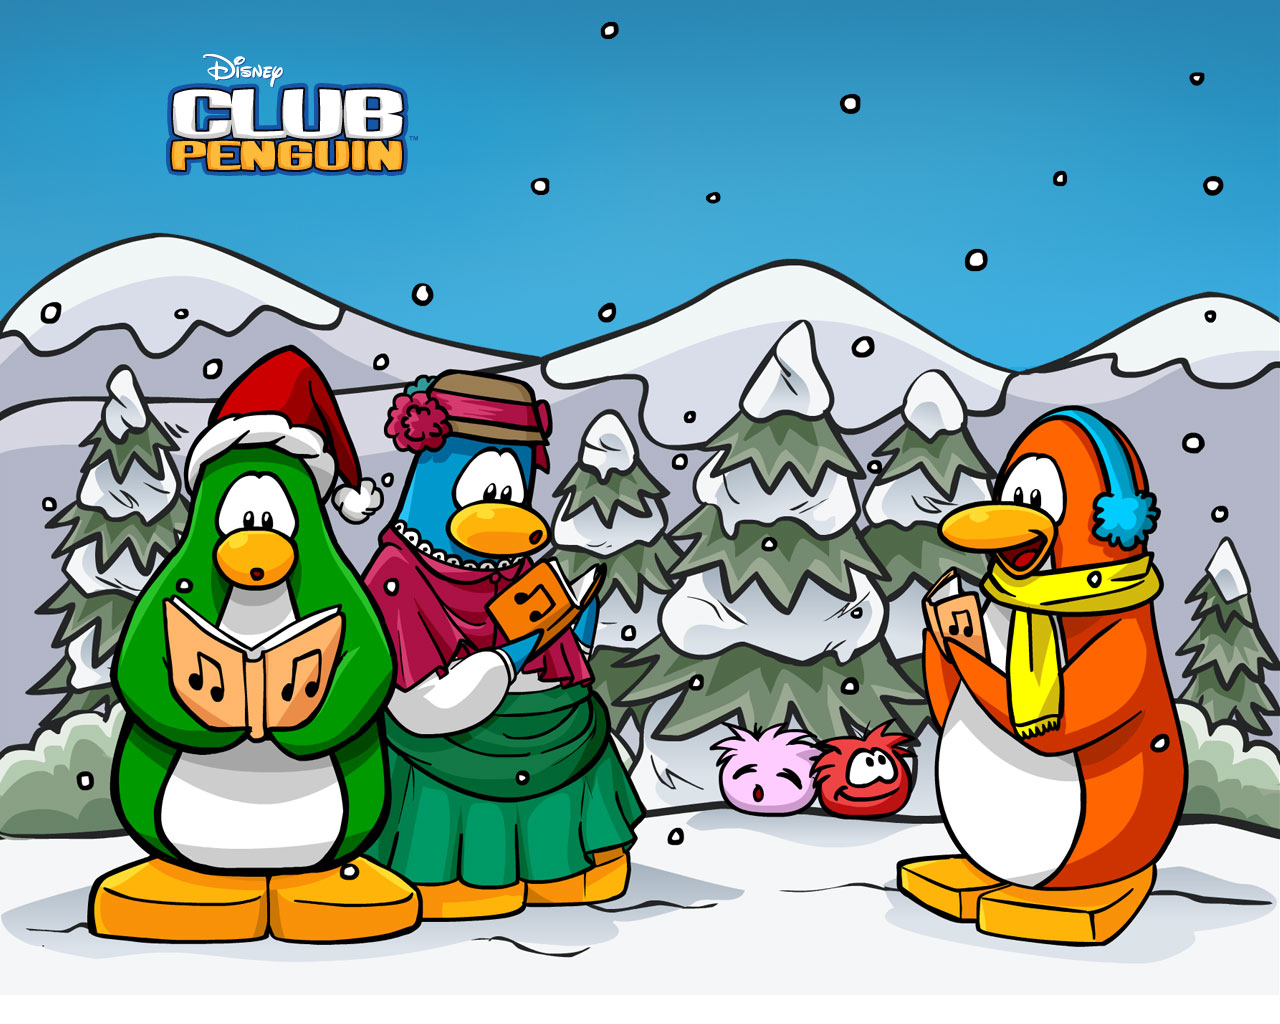 Club Penguin Wallpapers The BEST Club Penguin Cheats 1280x1024